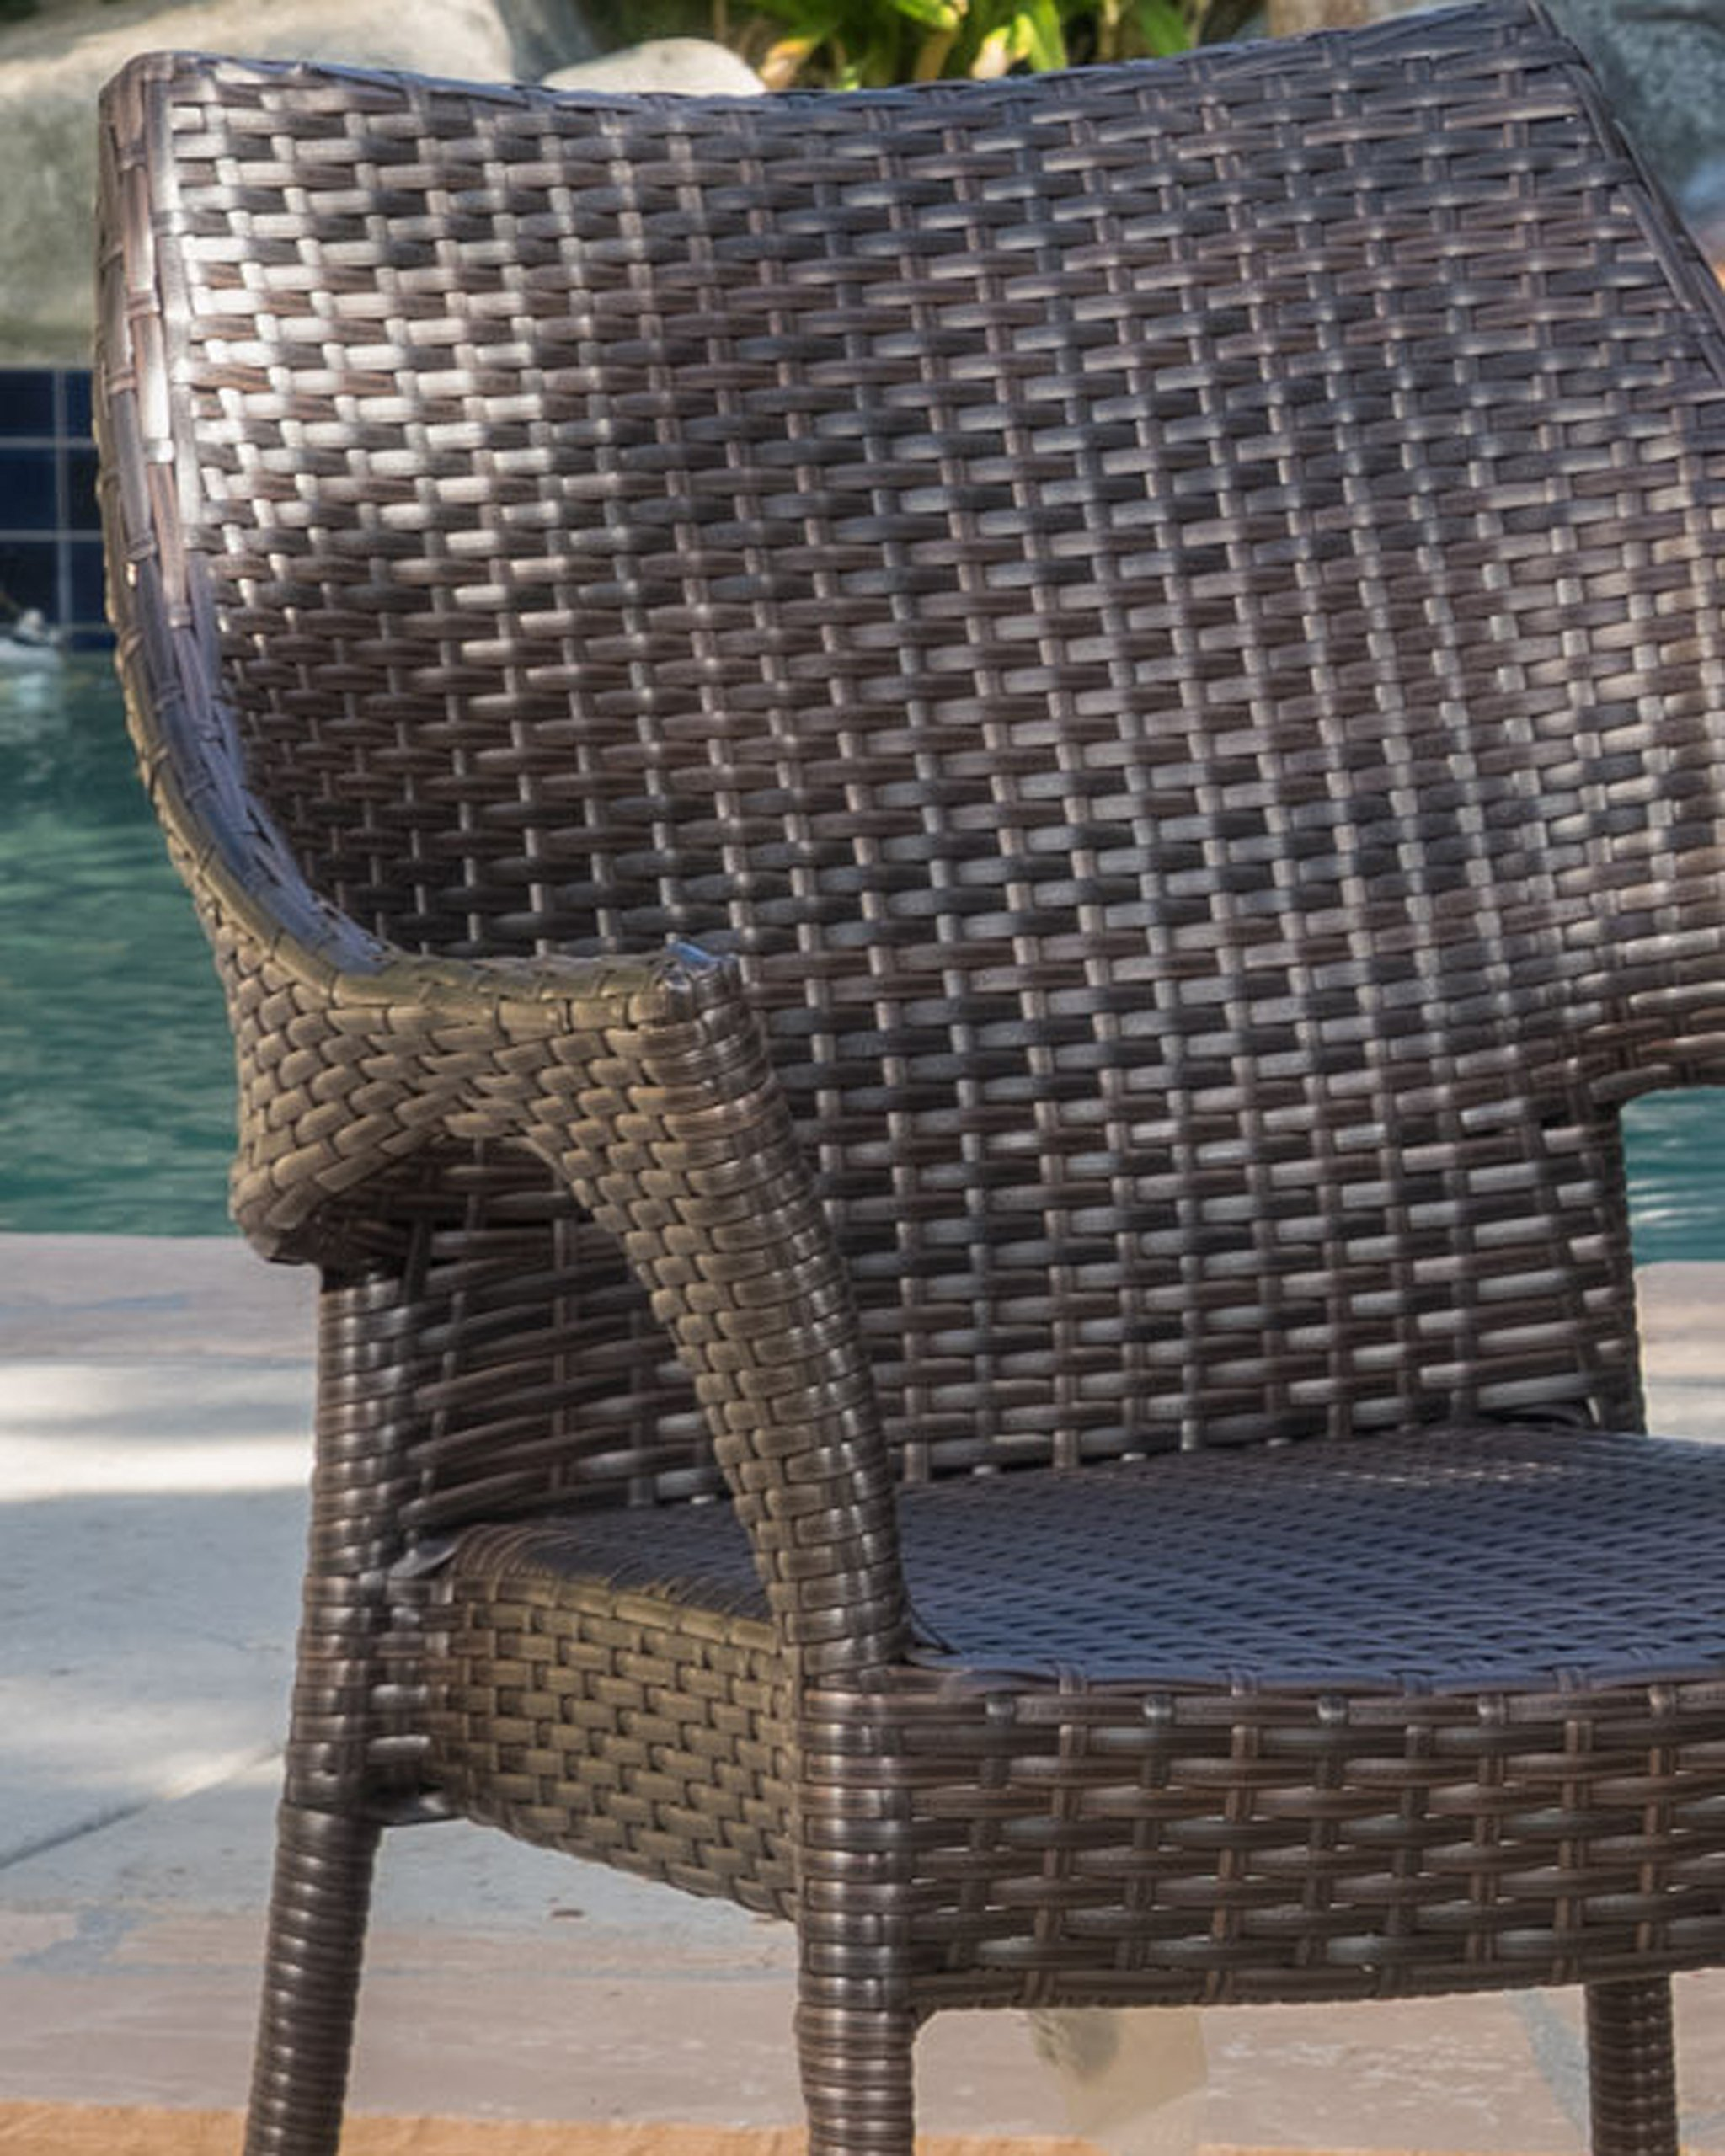 """Tahitian Patio Furniture ~ 3 Piece Outdoor Wicker Stacking Chair Conversation (Chat) Set (Brown) - Includes: Two (2) Outdoor Wicker Chairs and One (1) Outdoor Wicker Side Table Chair Dimensions: 24.00""""D x 24.00""""W x 32.75""""H Color: Multi-brown - patio-furniture, patio, conversation-sets - 91Z%2BzWMgsSL -"""